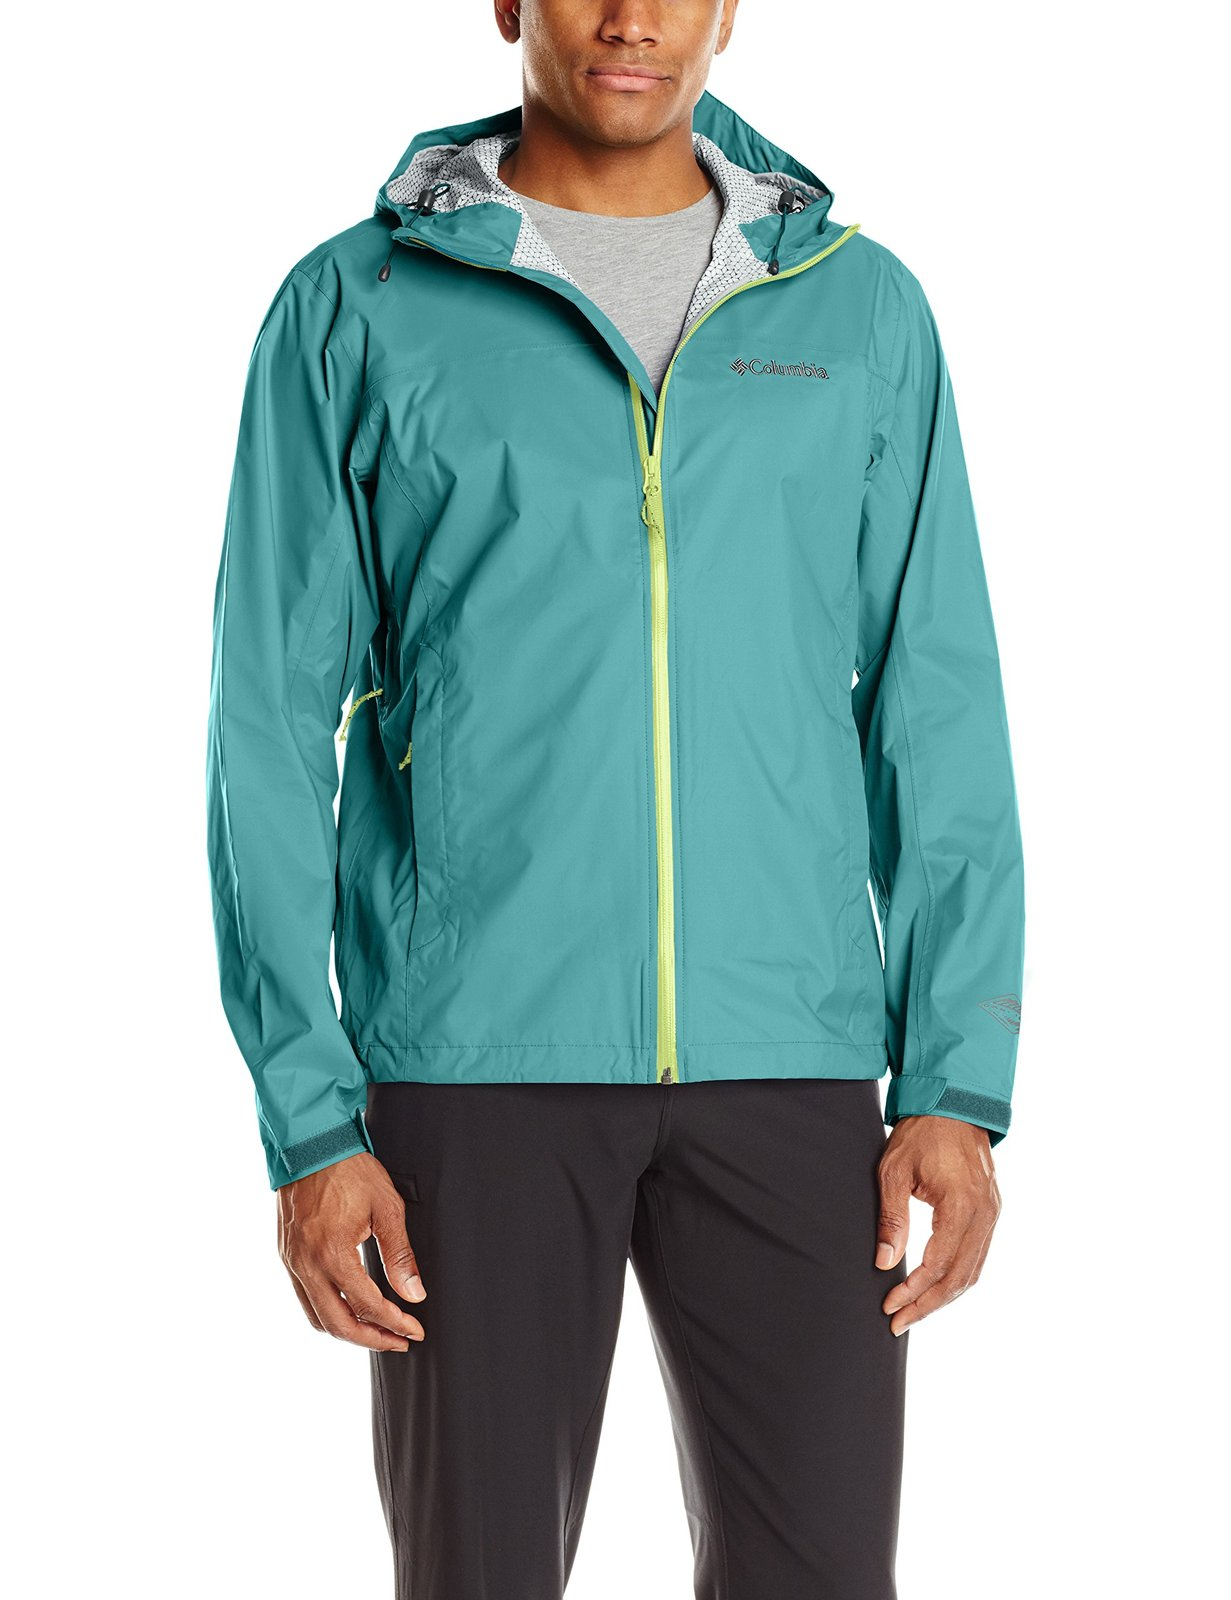 Columbia Men's Evapouration Jacket, Teal, X-Large